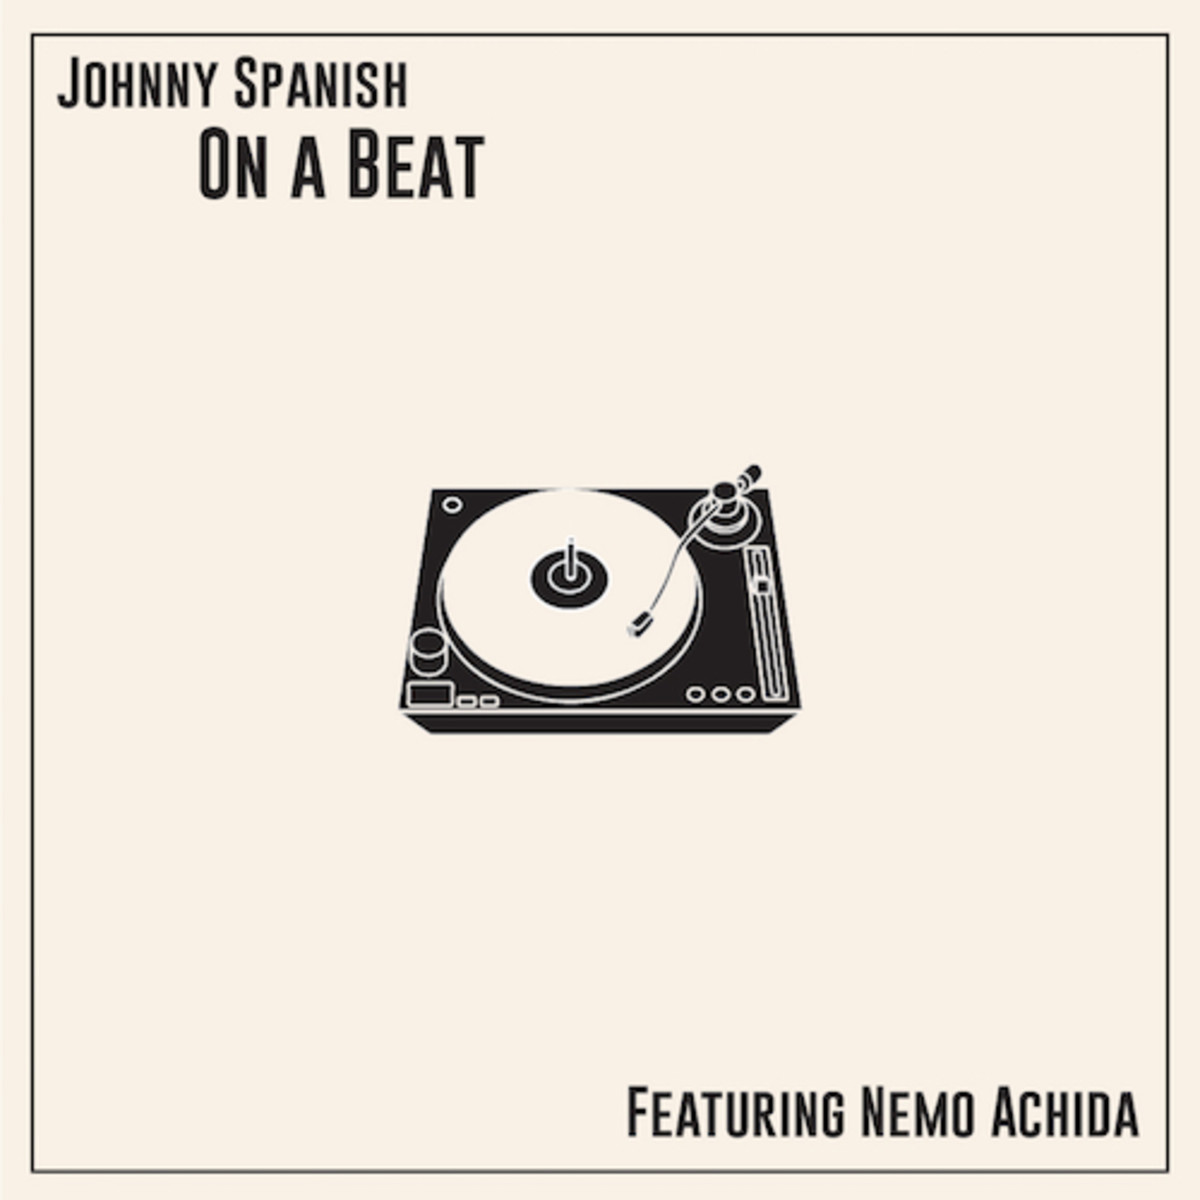 johnny-spanish-on-a-beat.jpg